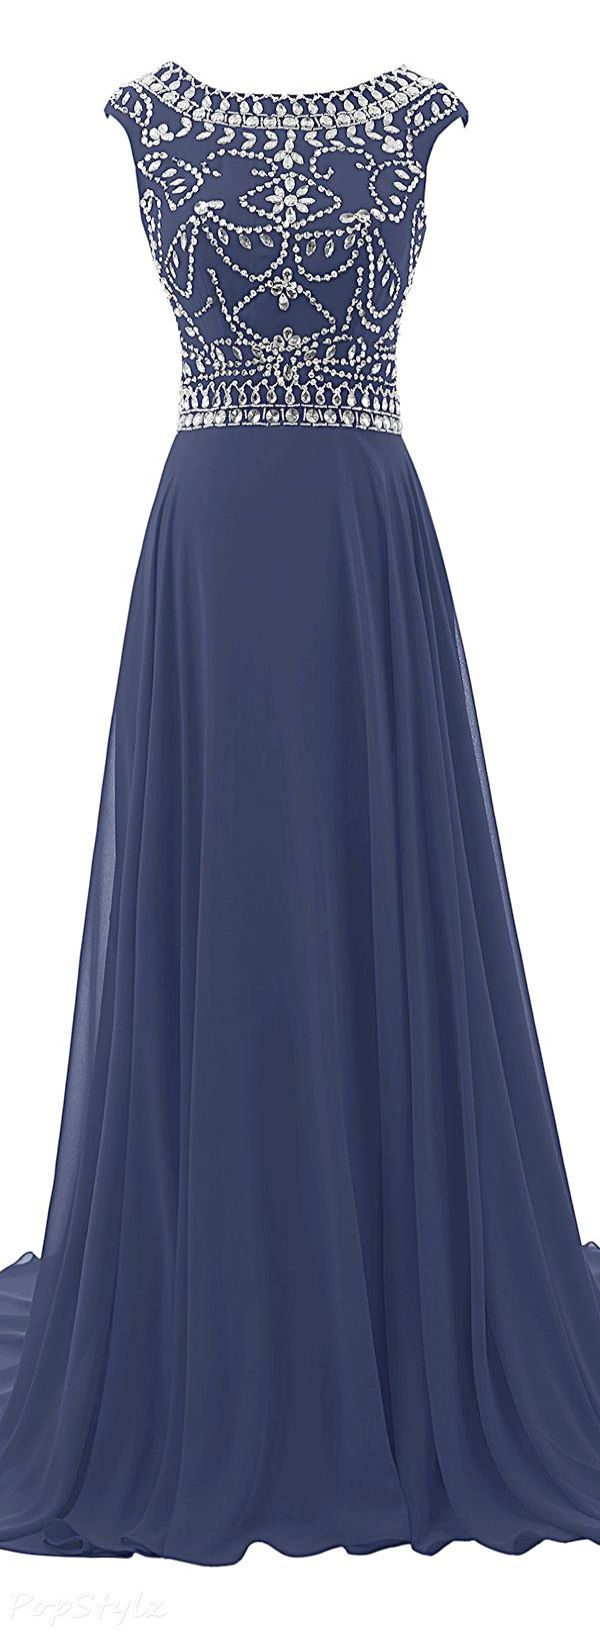 Evening gown at macyus formal gown hire sydney evening dresses